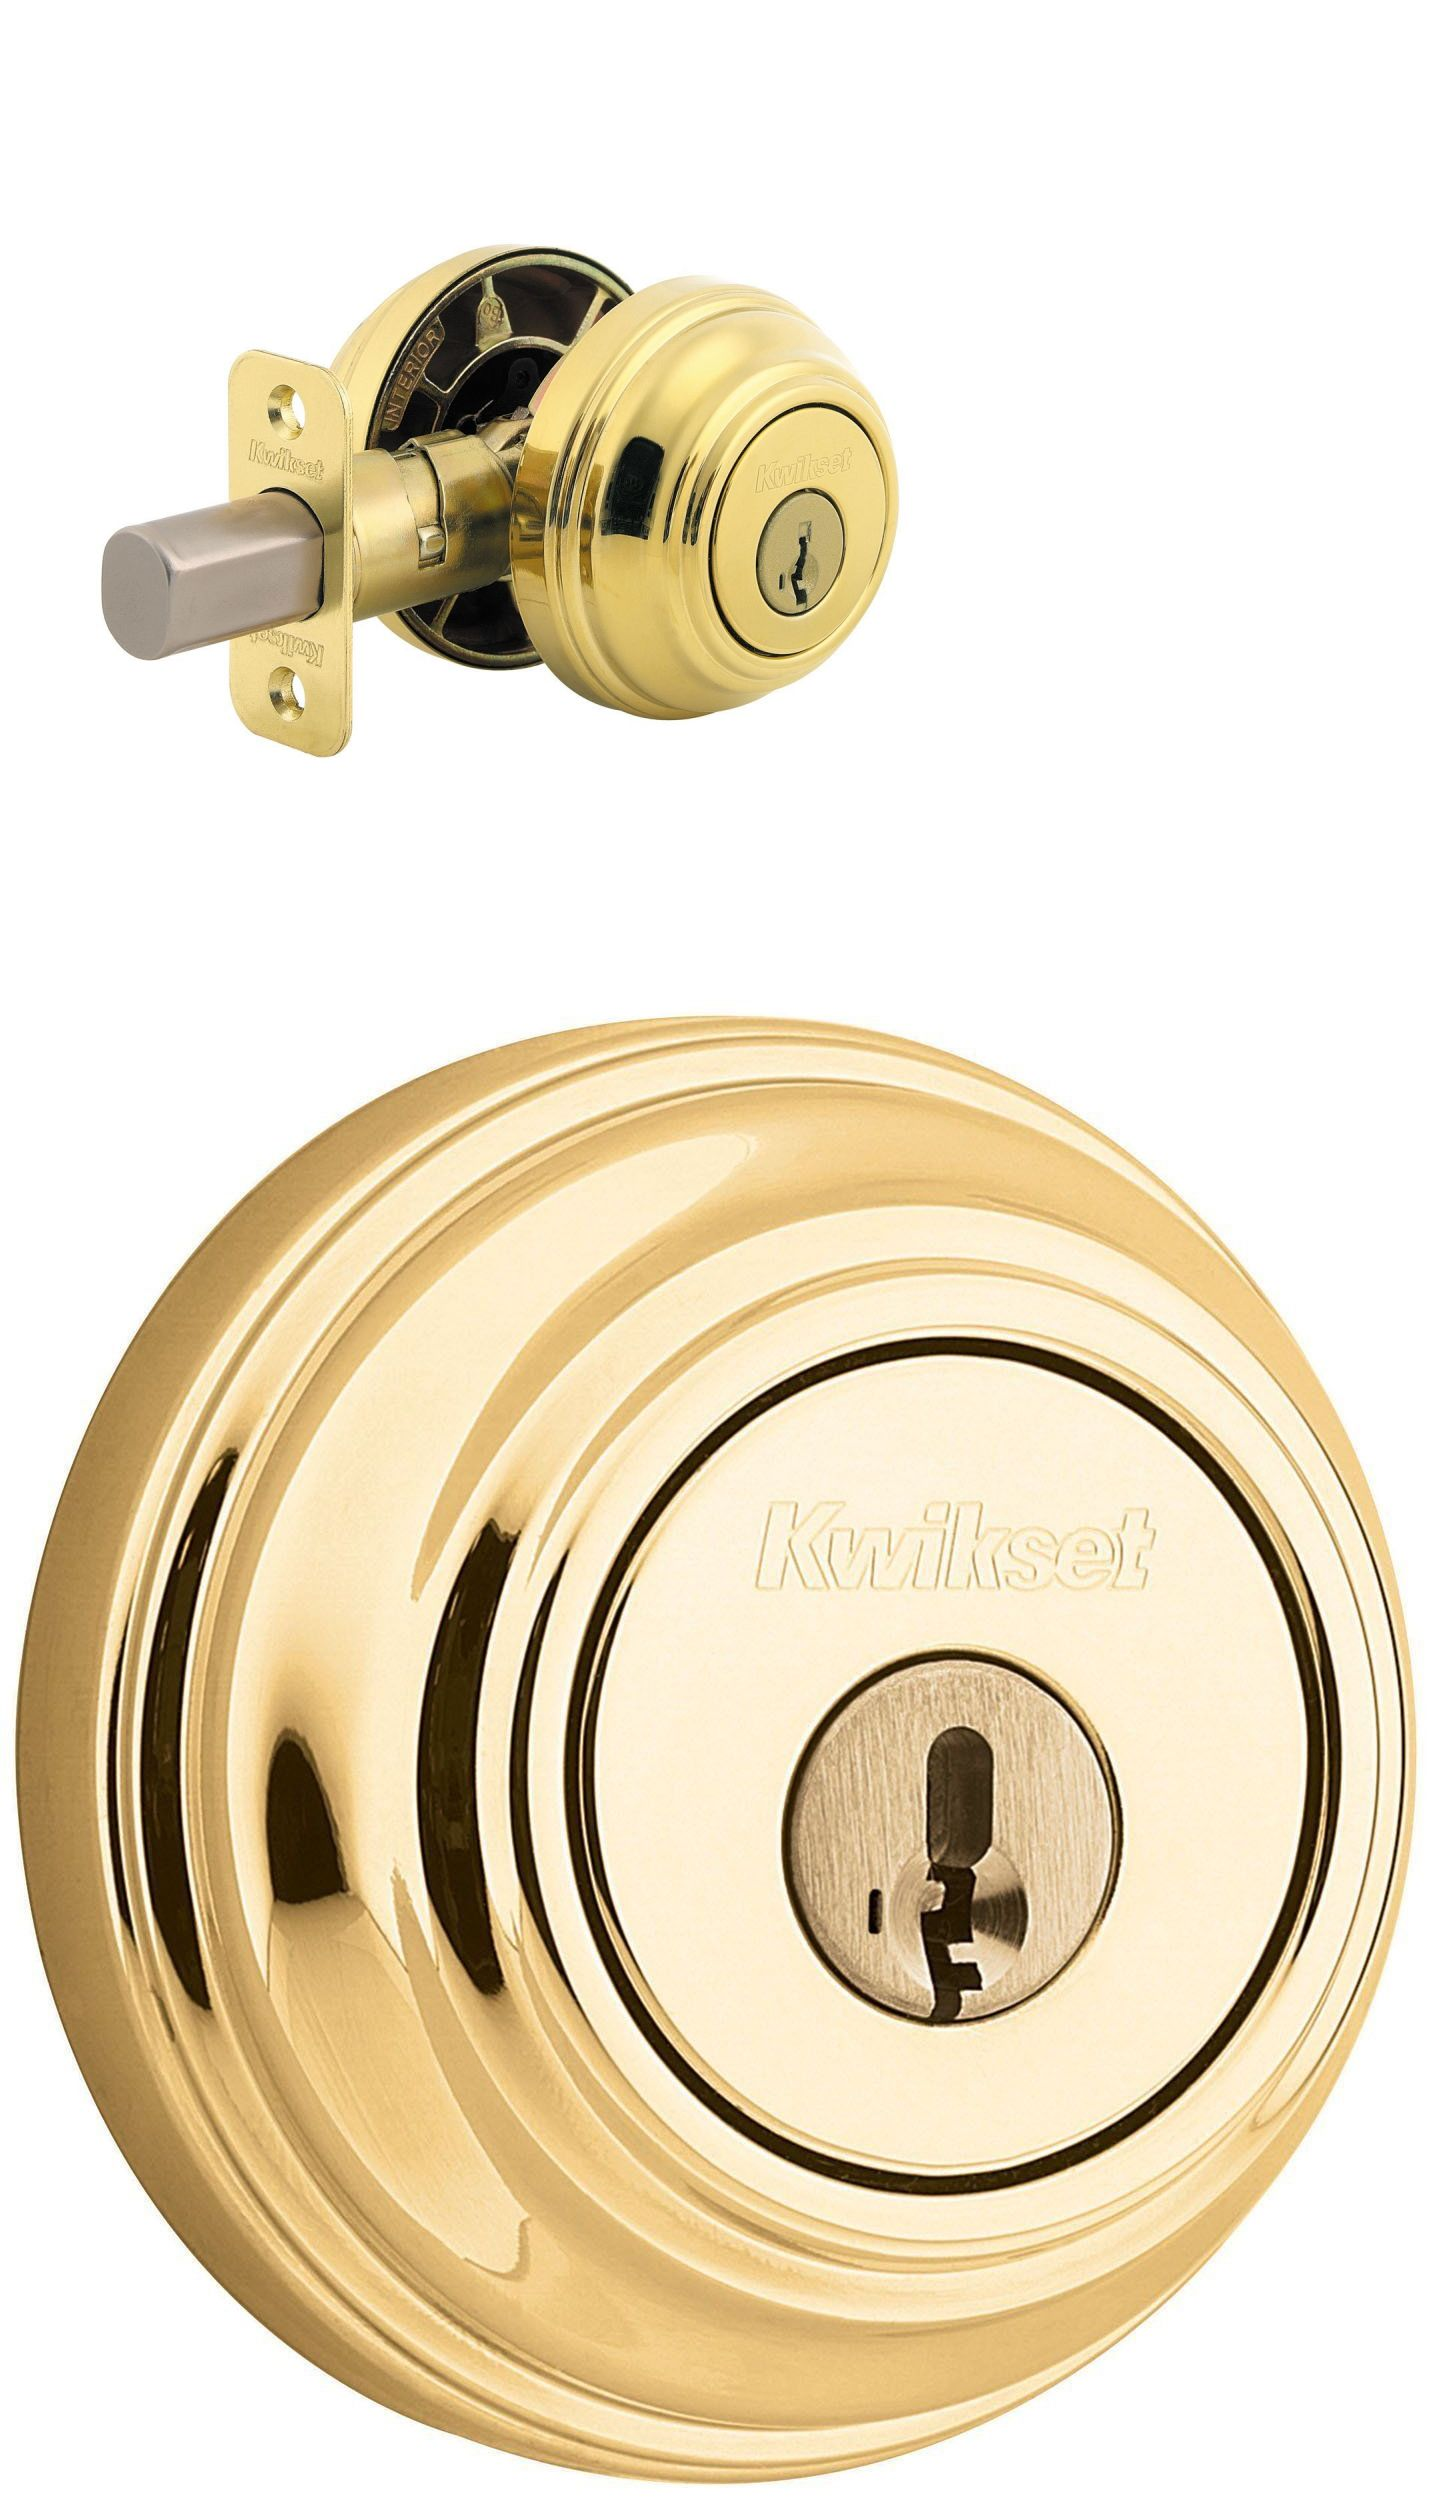 changing door a mj doors on watch z smaller the wave hole with knob schlage deadbolt home inch